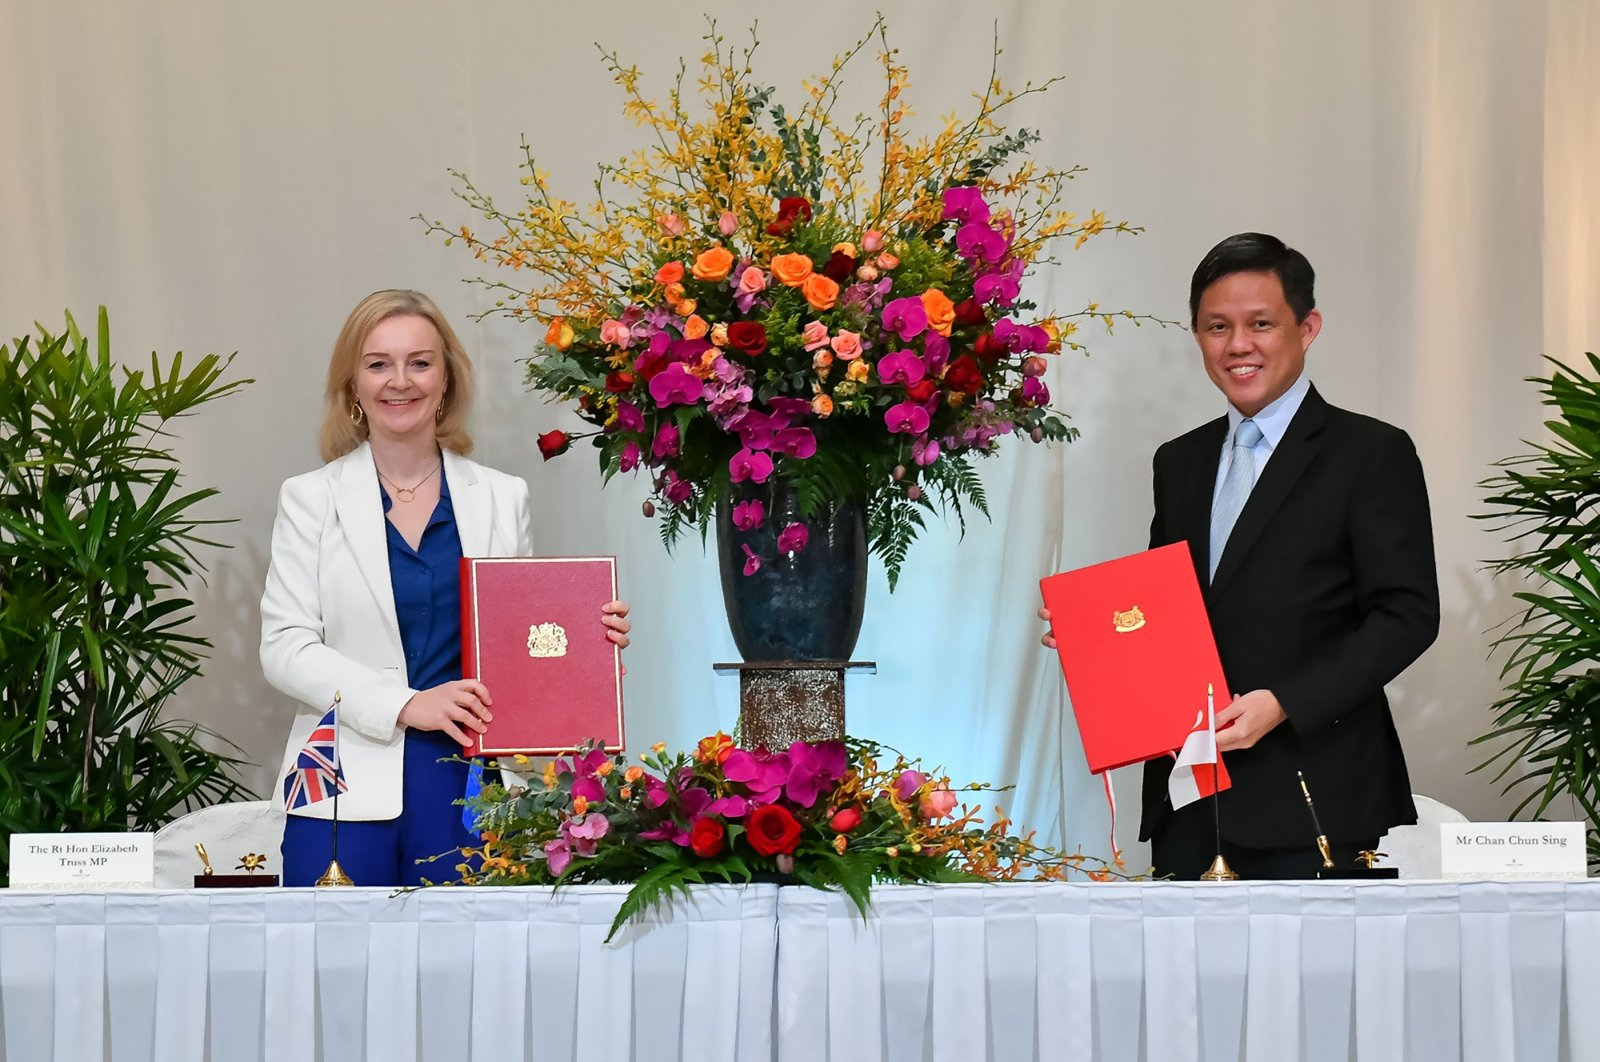 Britain's International Trade Secretary Liz Truss (L) and her Singaporean counterpart Chan Chun Sing signing a free trade deal in Singapore, Dec. 10, 2020. (Photo by Singapore's Ministry of Trade and Industry via AFP)